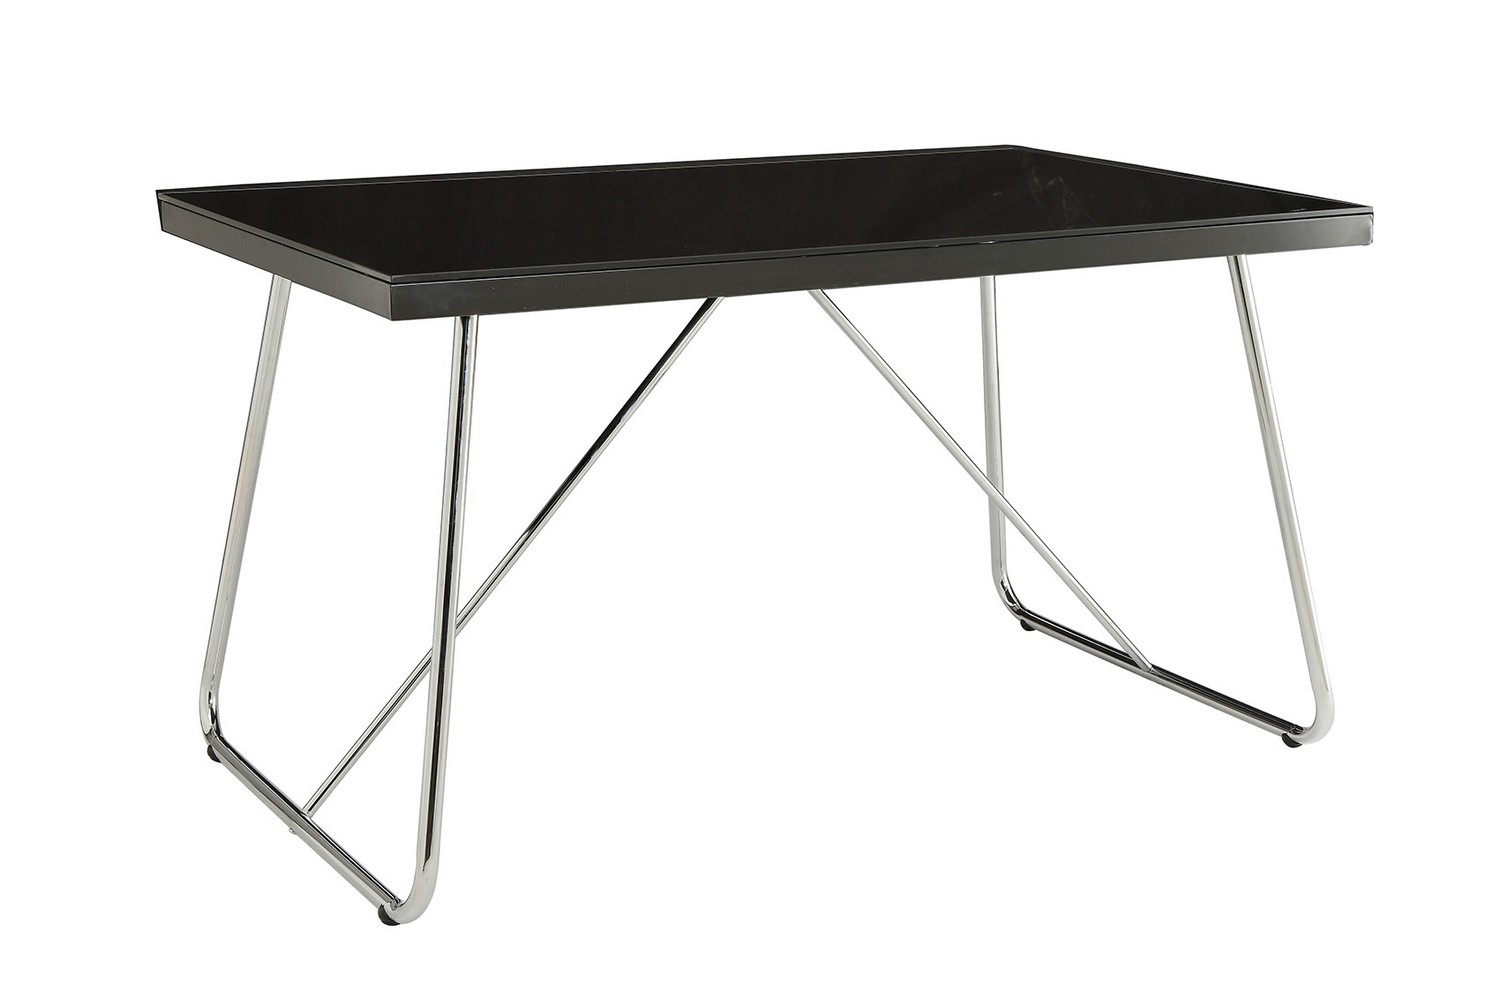 Coaster avram dining table chrome black glass 106211 at for Black glass dining table